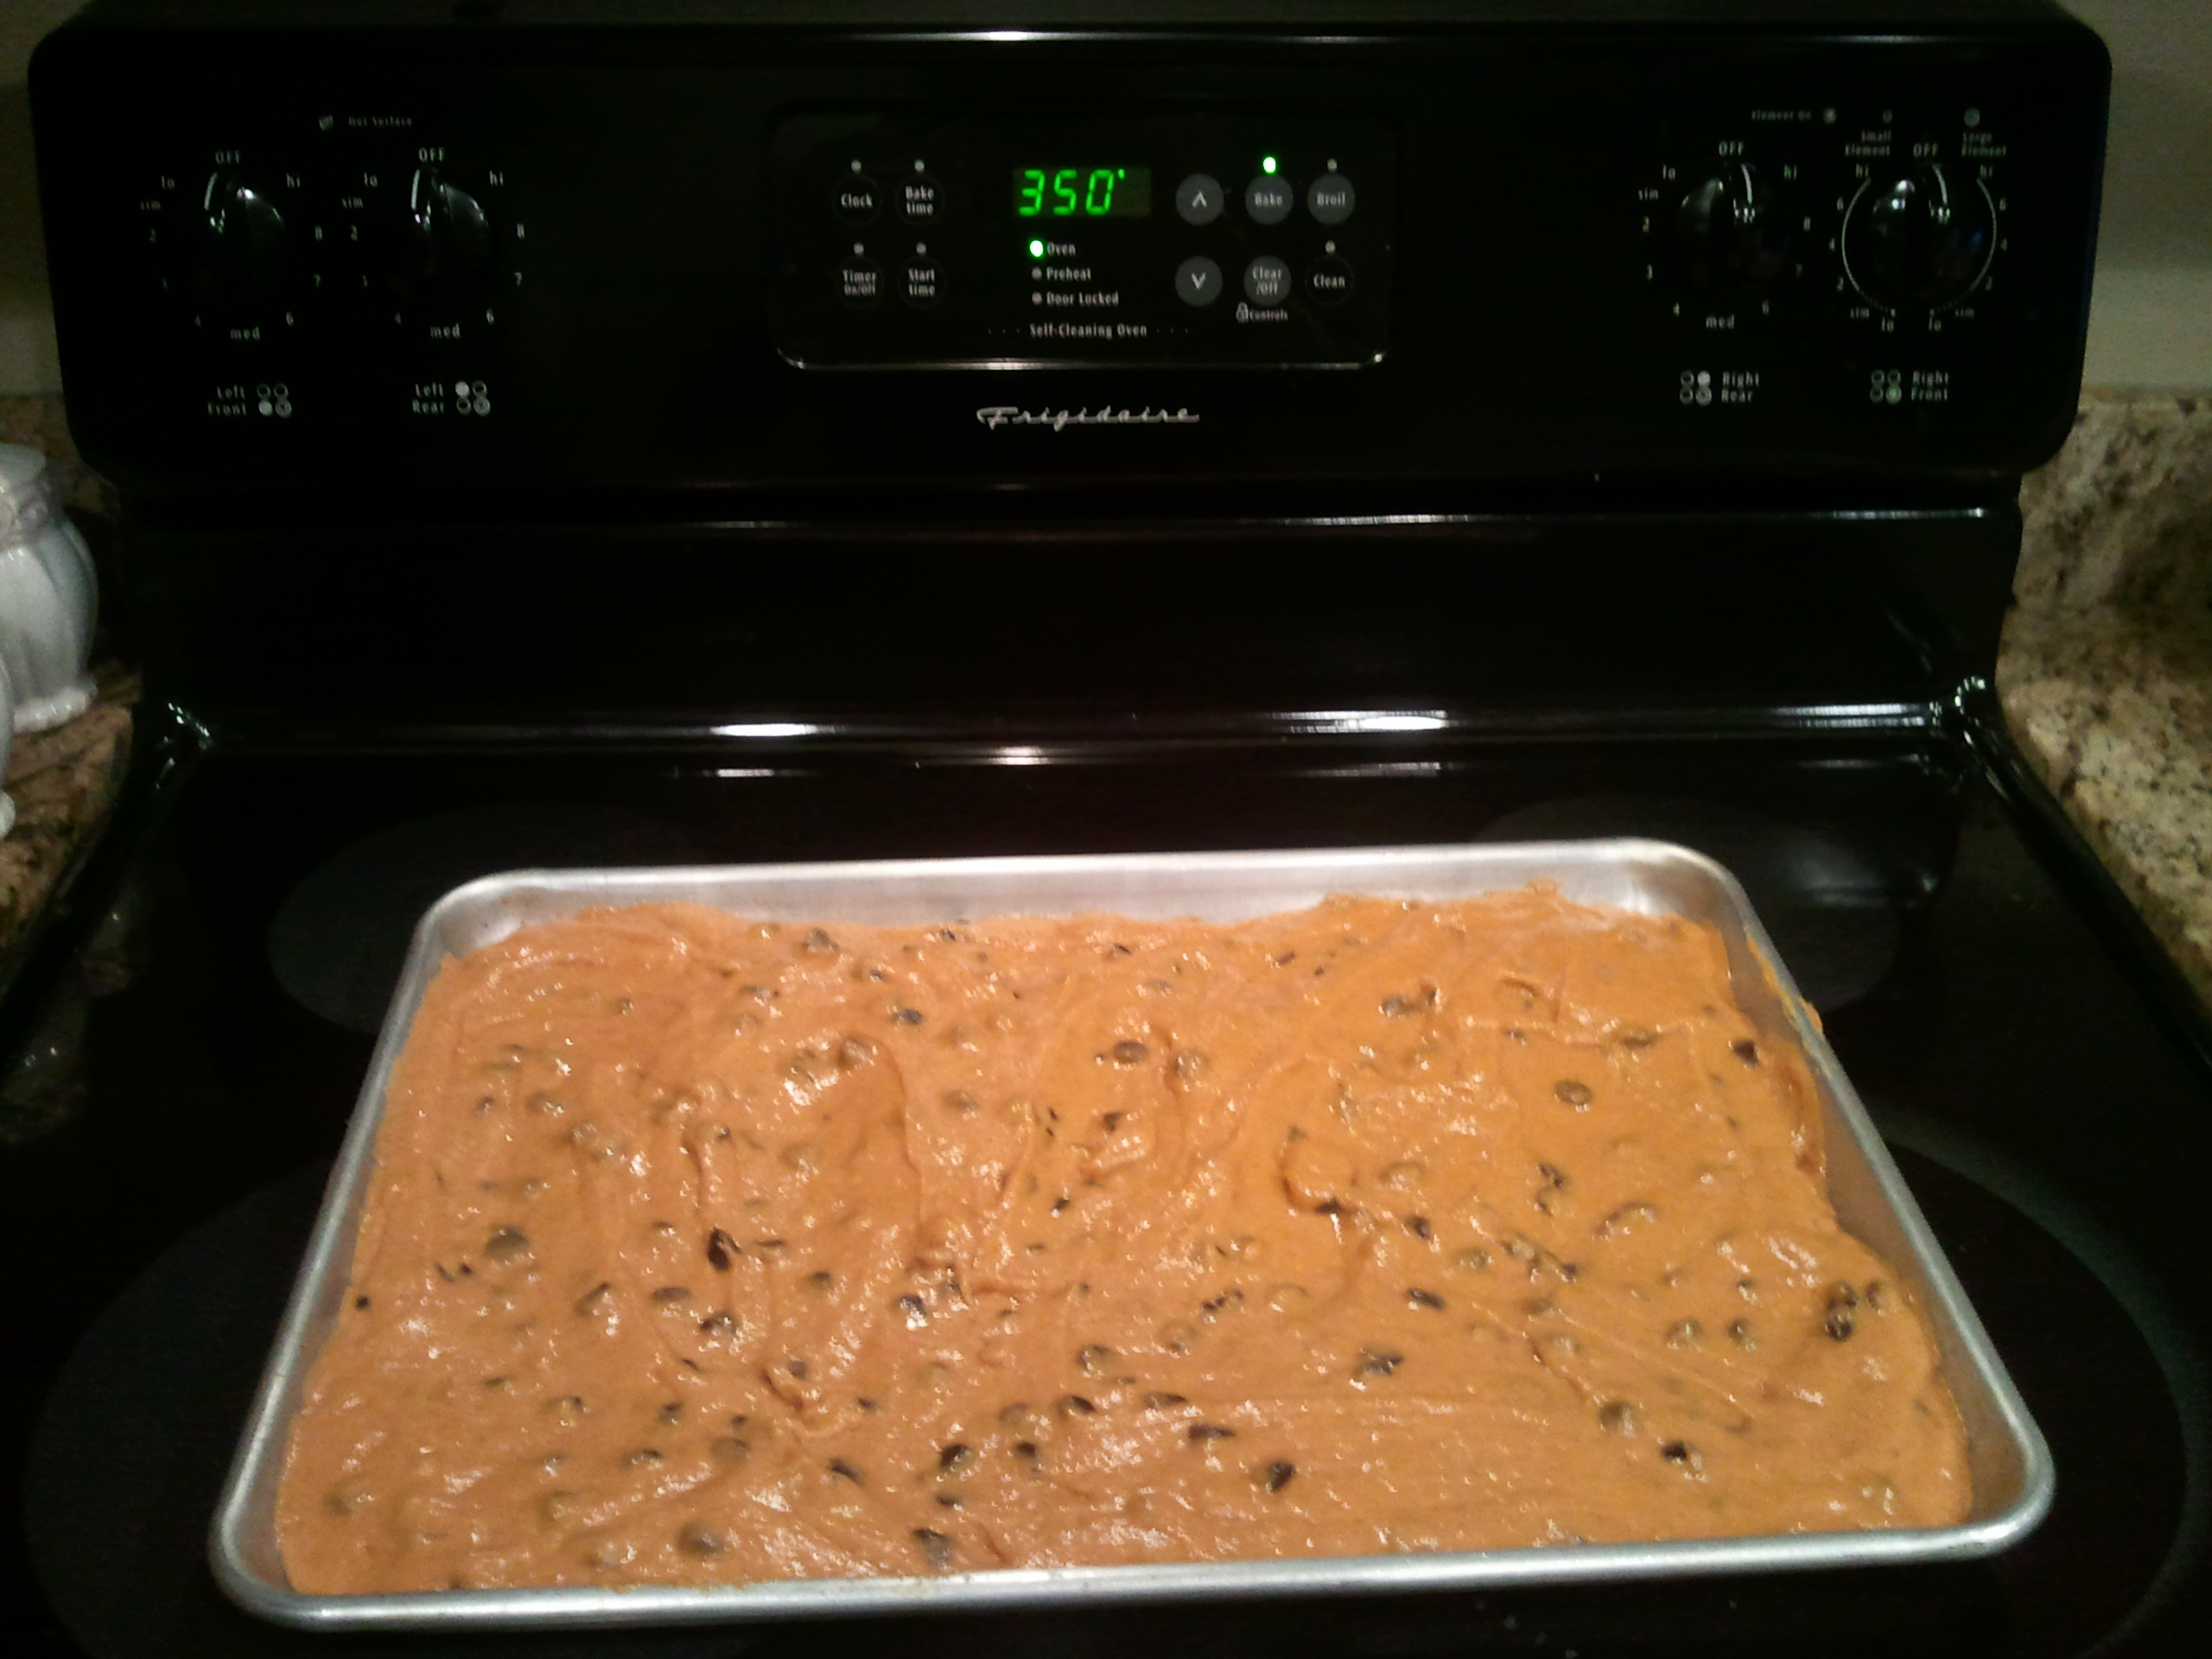 Picture of Pour Mixture Into Non Greased 15x10x1 Baking Pan. Bake at 350 for 25-30 Minutes.